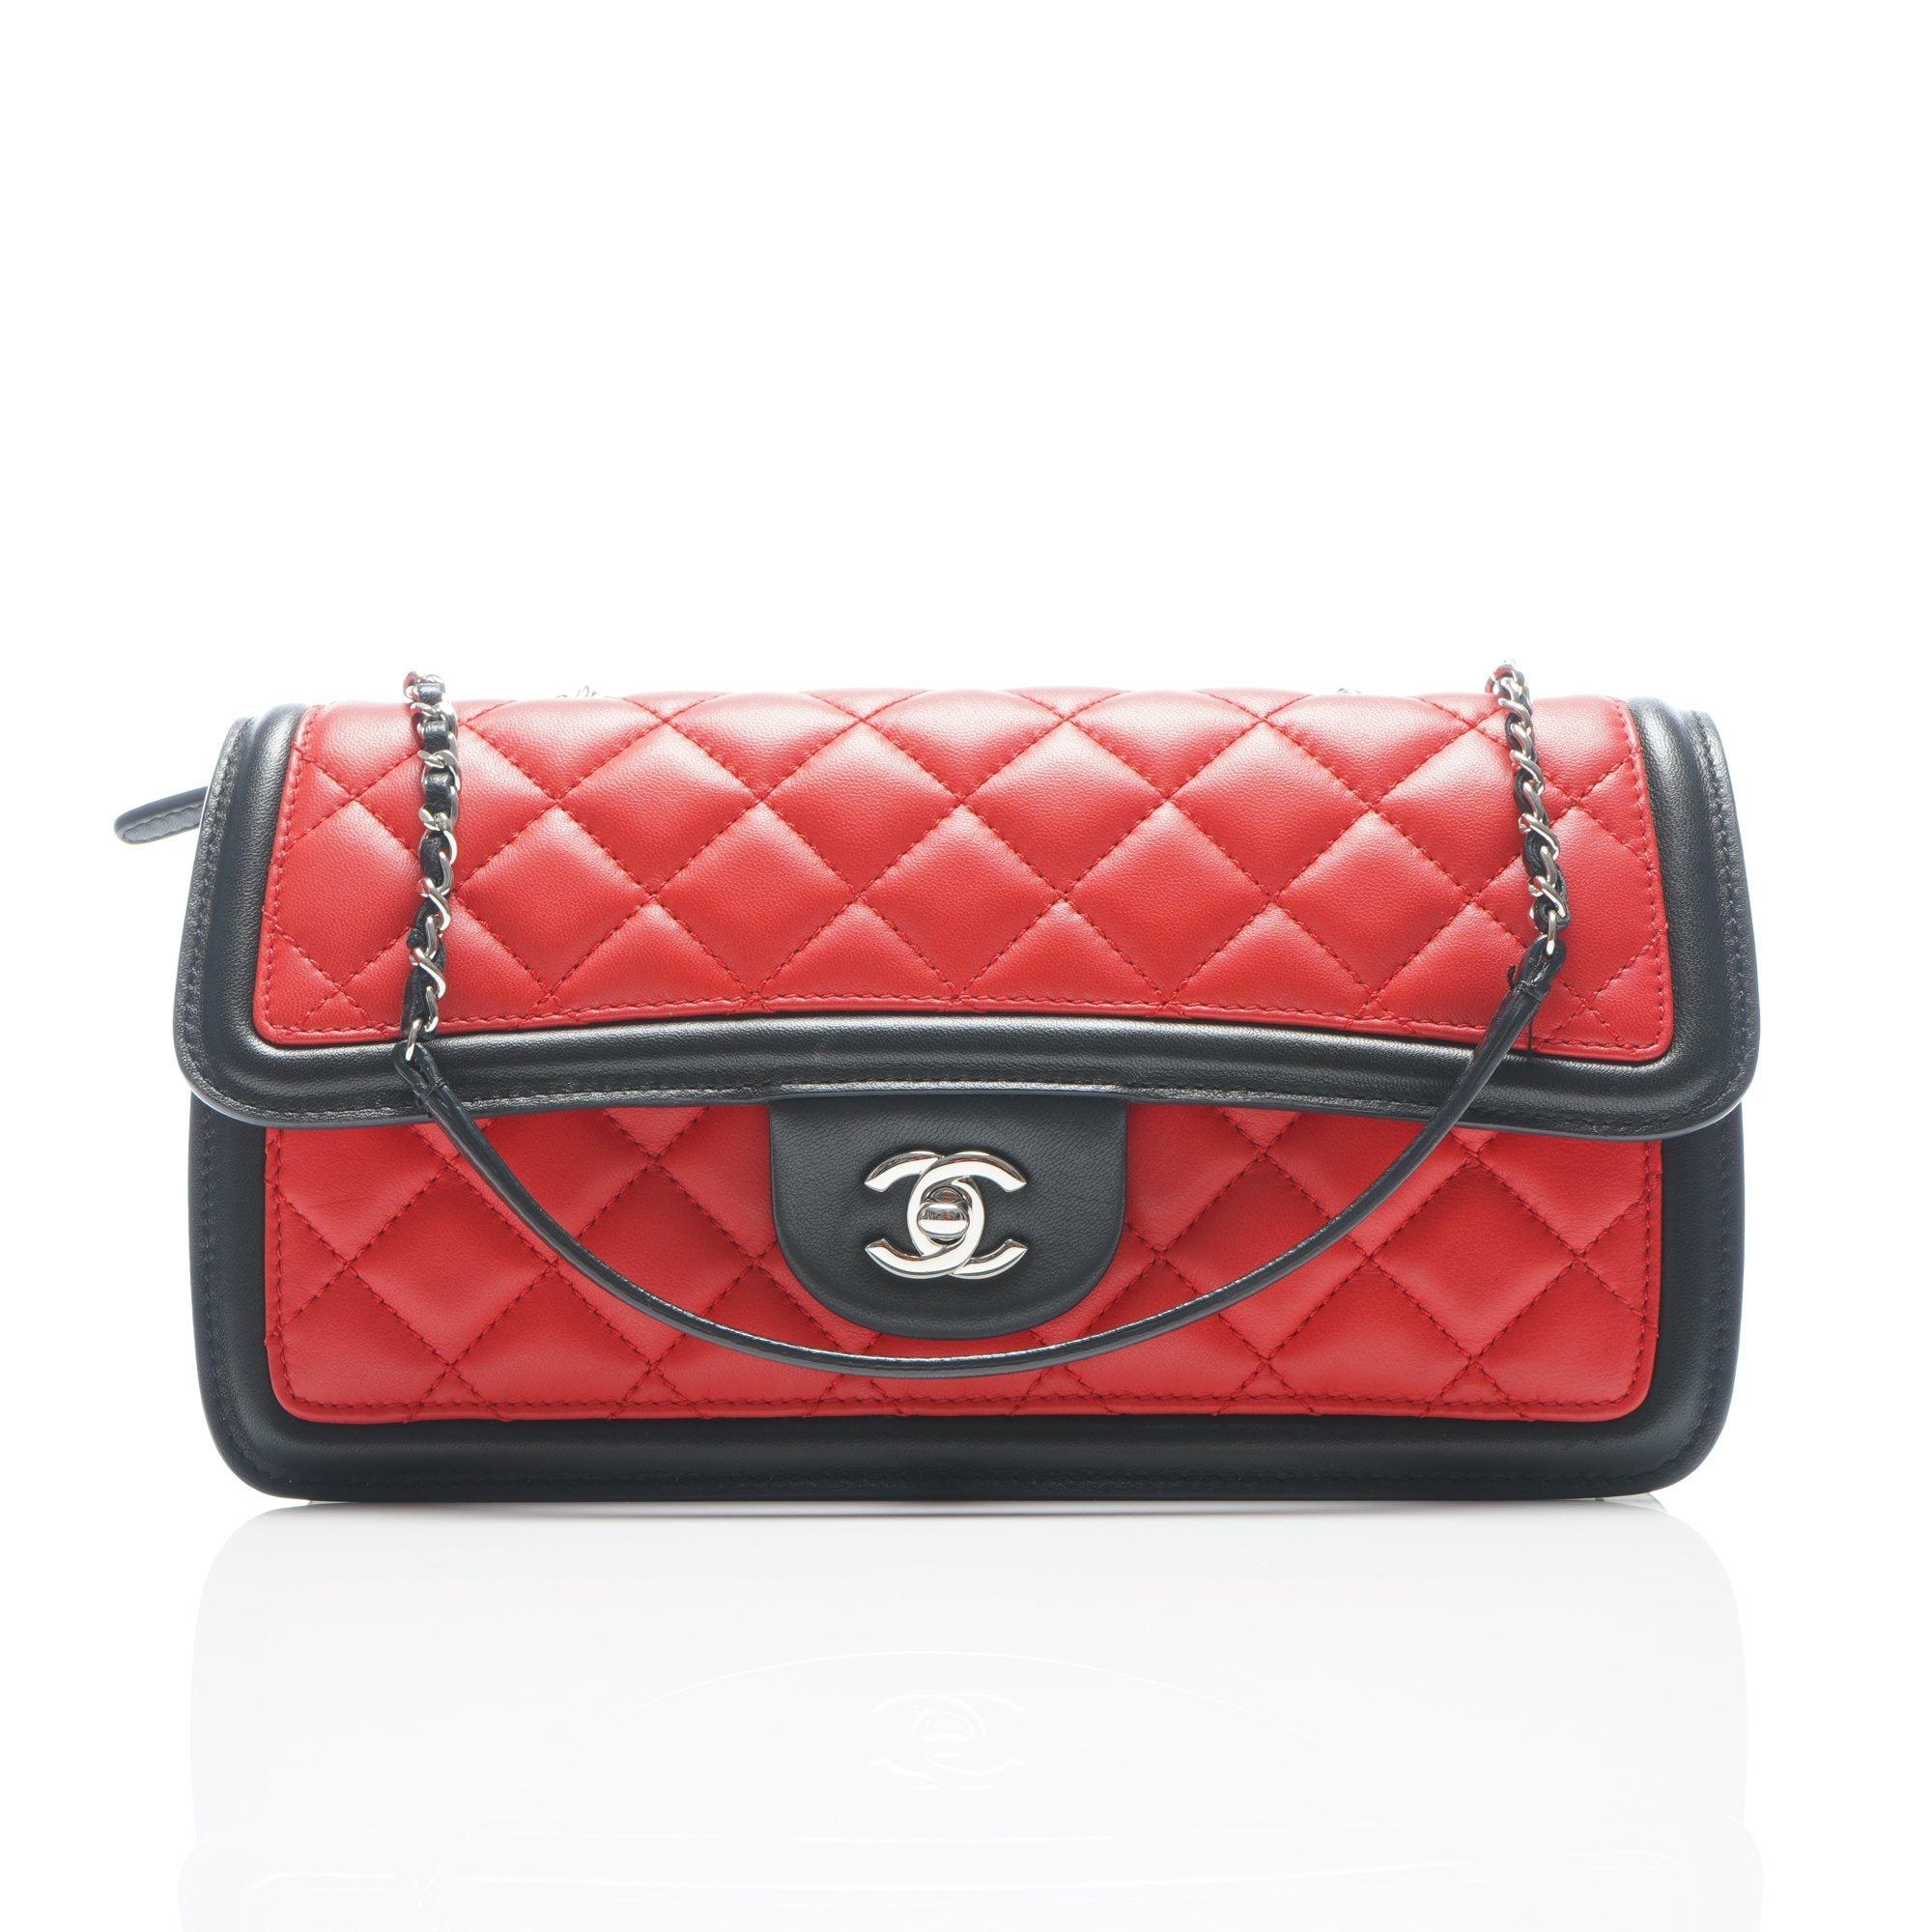 7962352351bfdb Chanel Tri-Color Quilted Lambskin Leather East/West Flap Bag – Garderobe